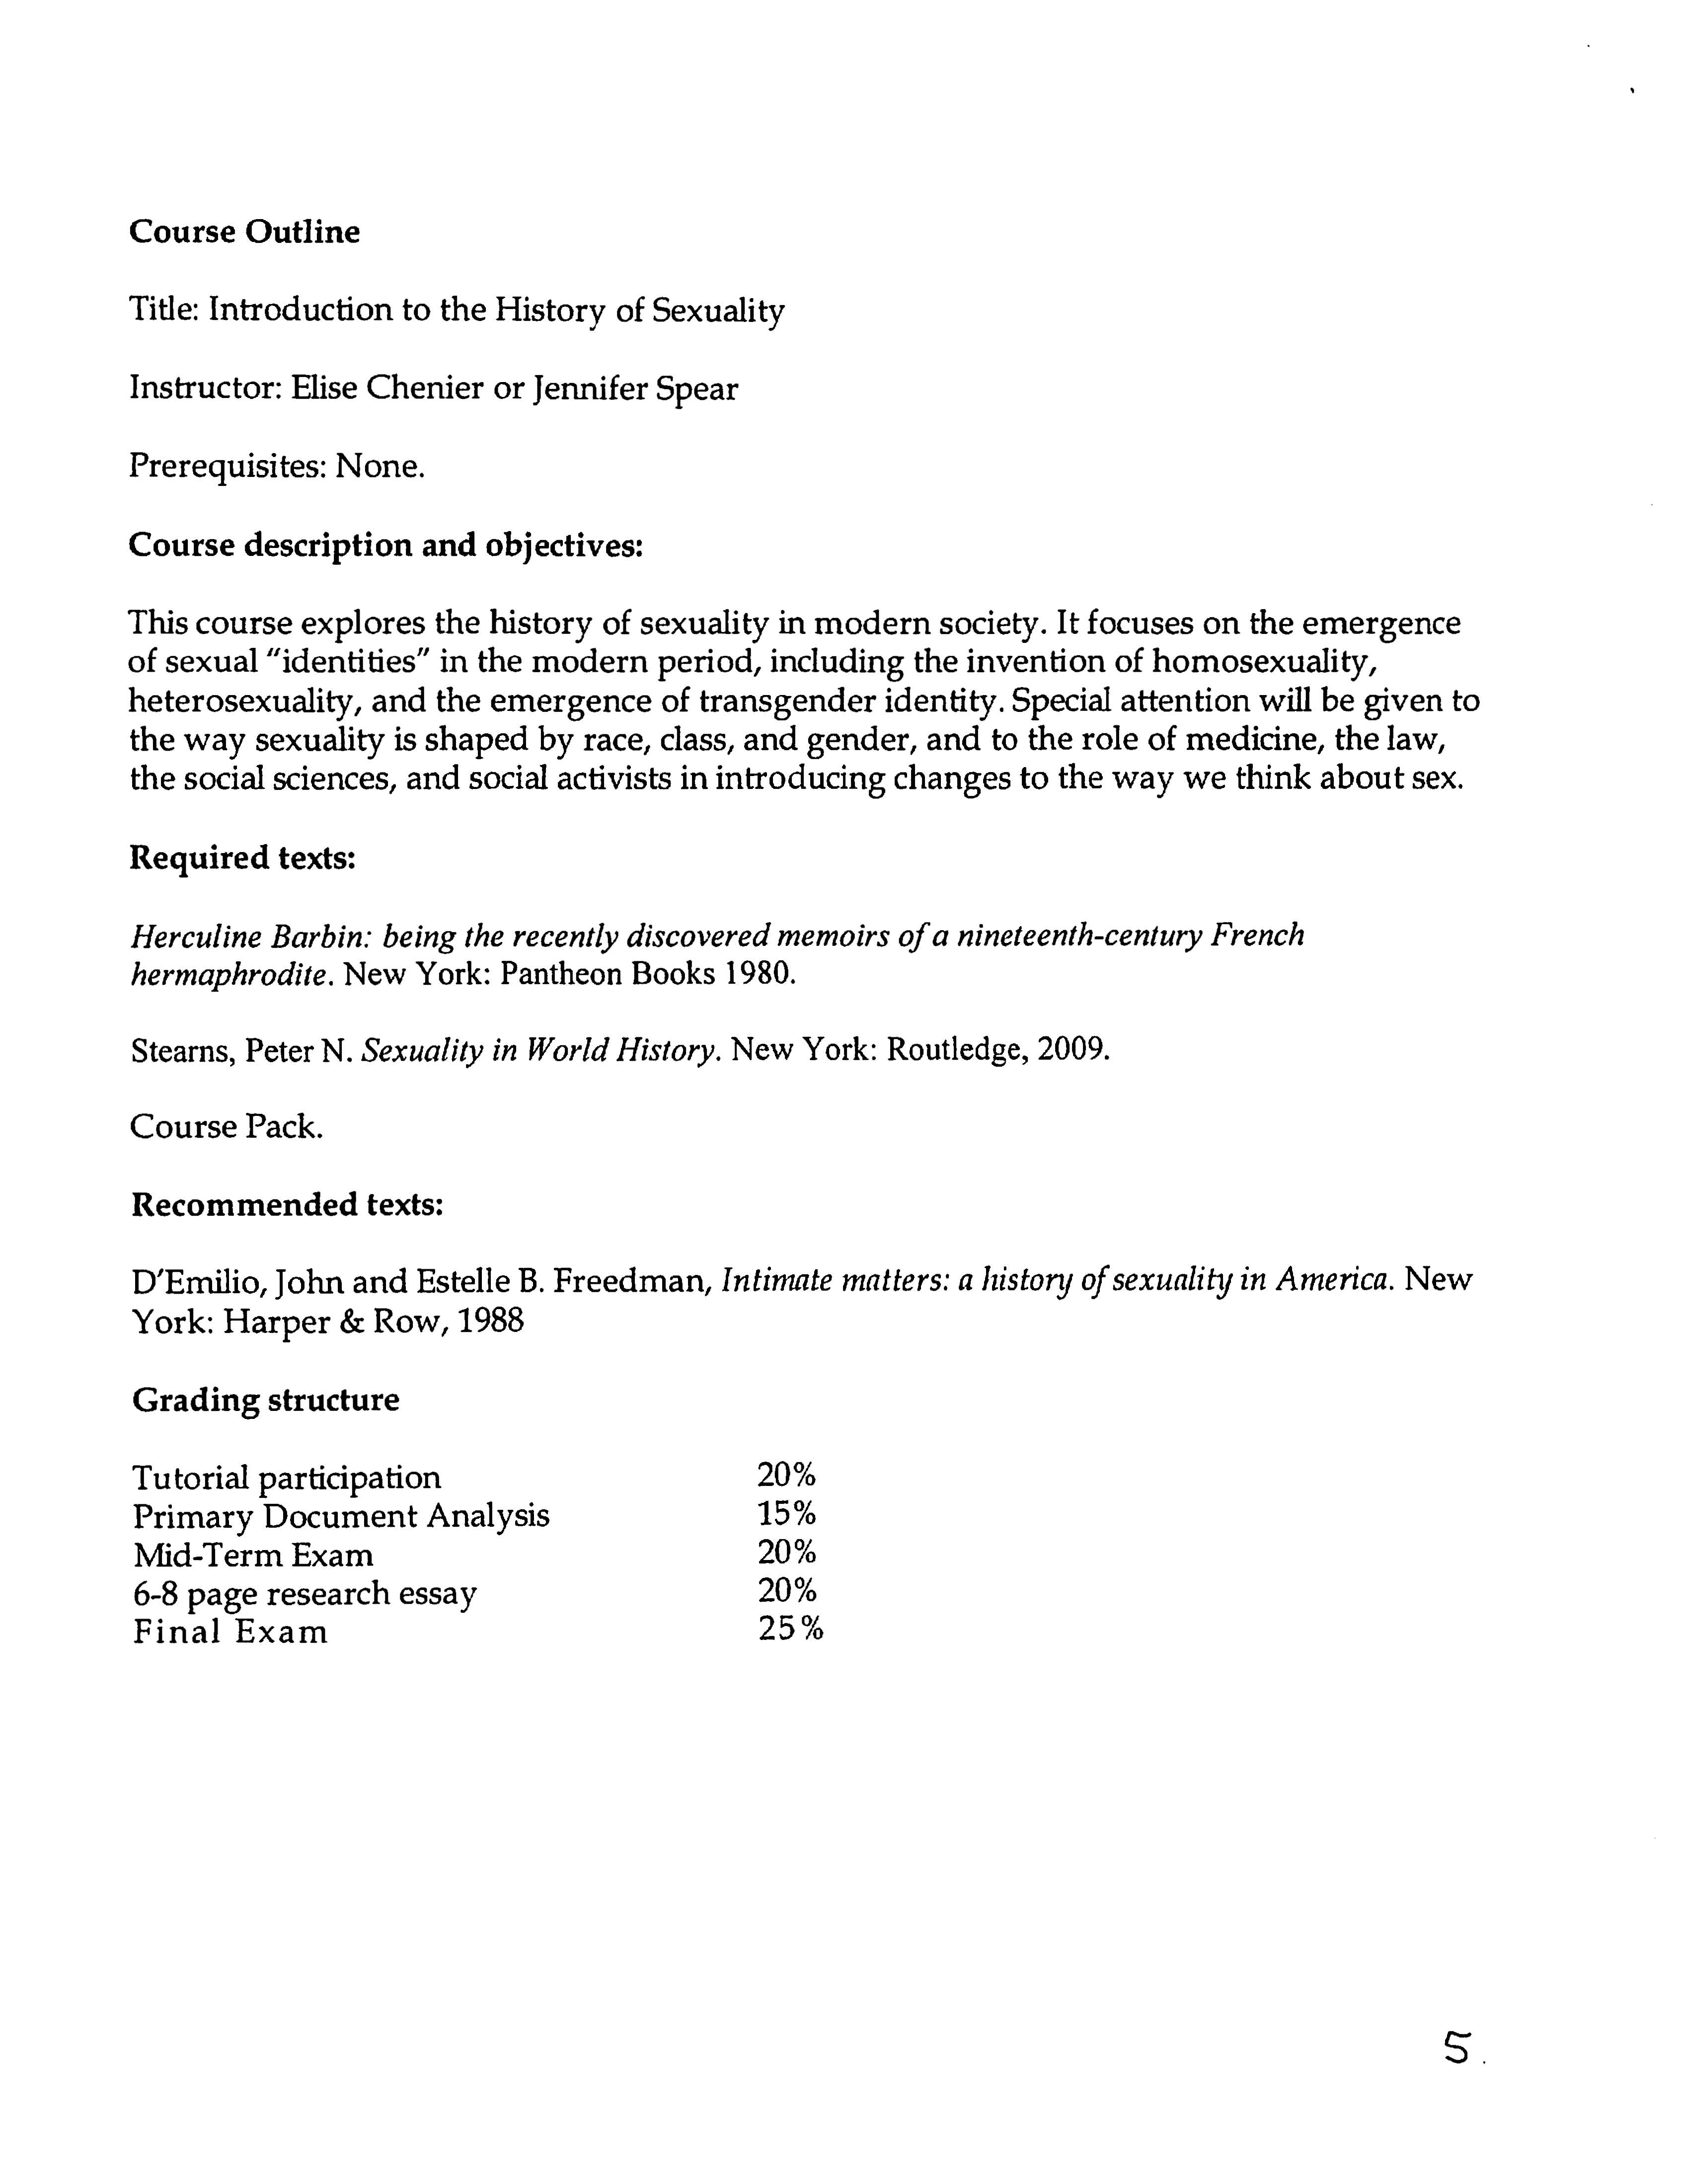 cultural anthropology research paper outline A cultural anthropology research paper example can include differences in growth and development of a certain species or subgroup of a race there is a difference in anthropological writing compared to typical research paper writing anthropology requires that the writer be culturally relative.